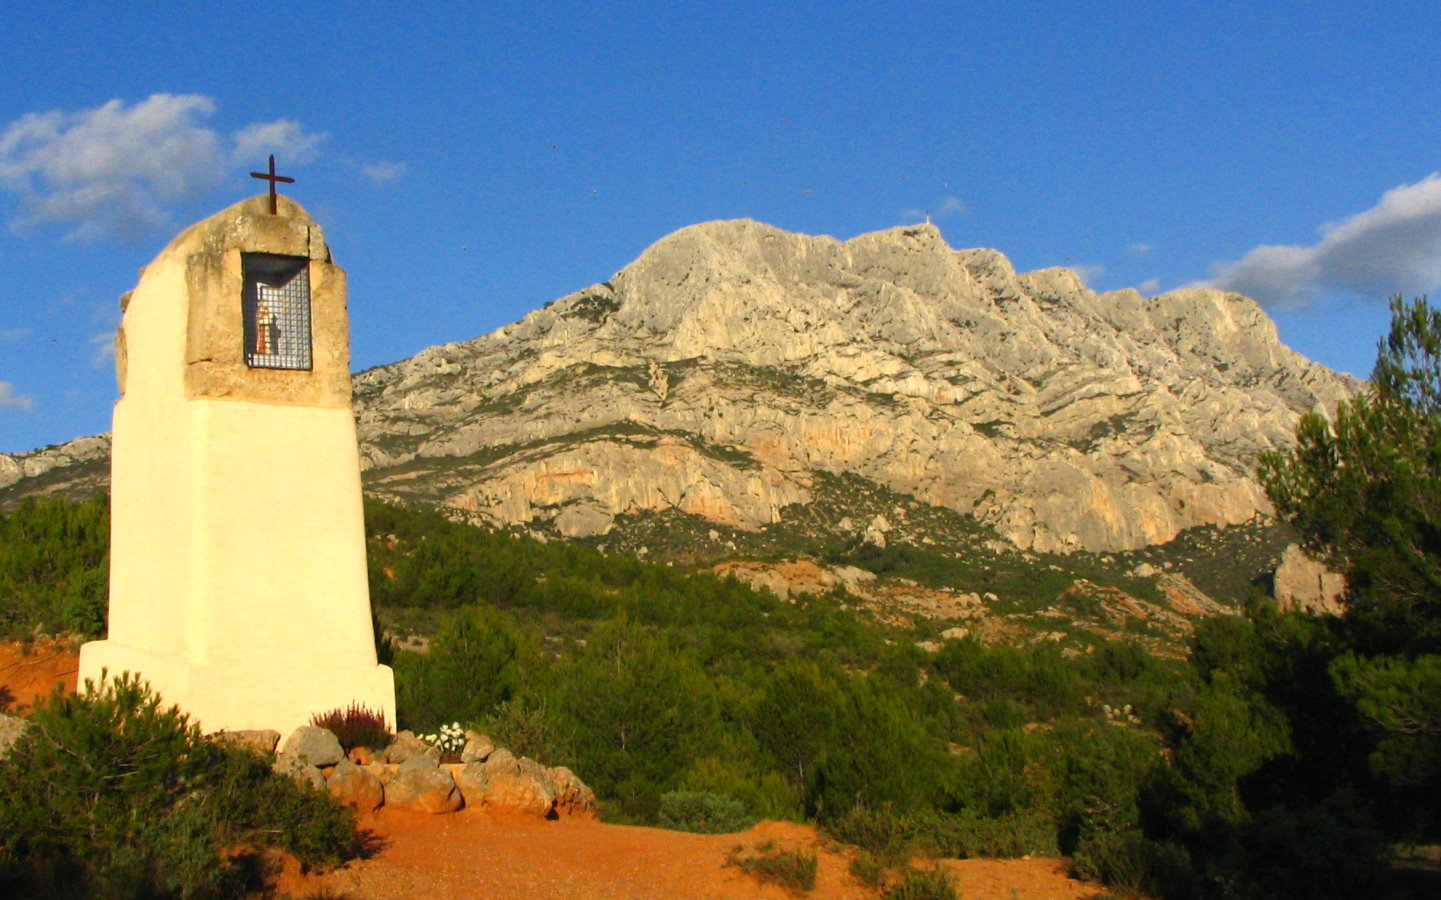 sainte victoire divorced singles dating site Dating biographers do not agree on the picture's dating and position within the series lionello venturi dated it from 1883–87, and georges rivière placed it in the mid-1870s.